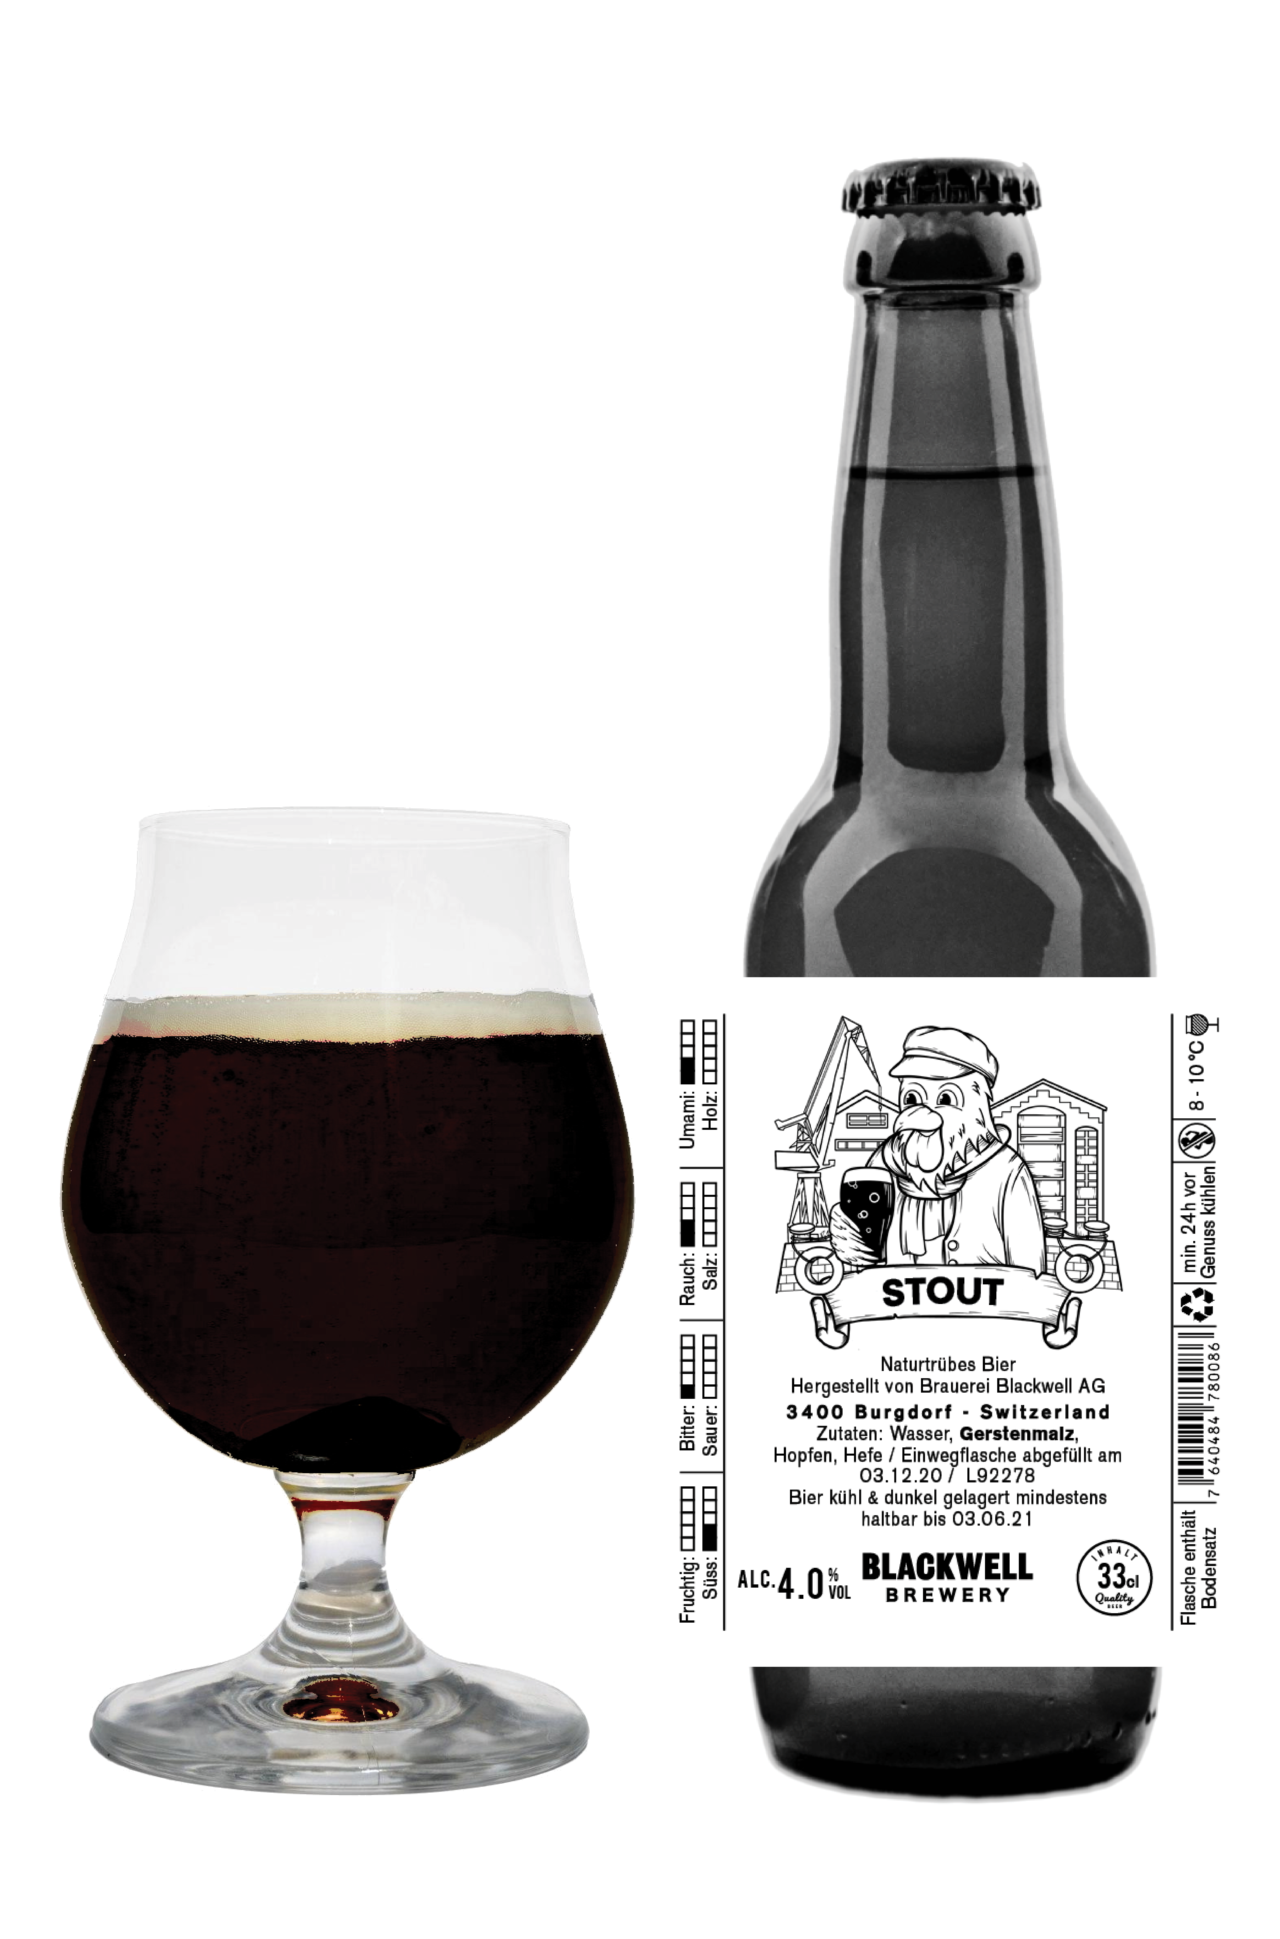 https://blackwellbrewery.ch/wp-content/uploads/2020/05/Stout_Blackwell-1-1280x1939.png